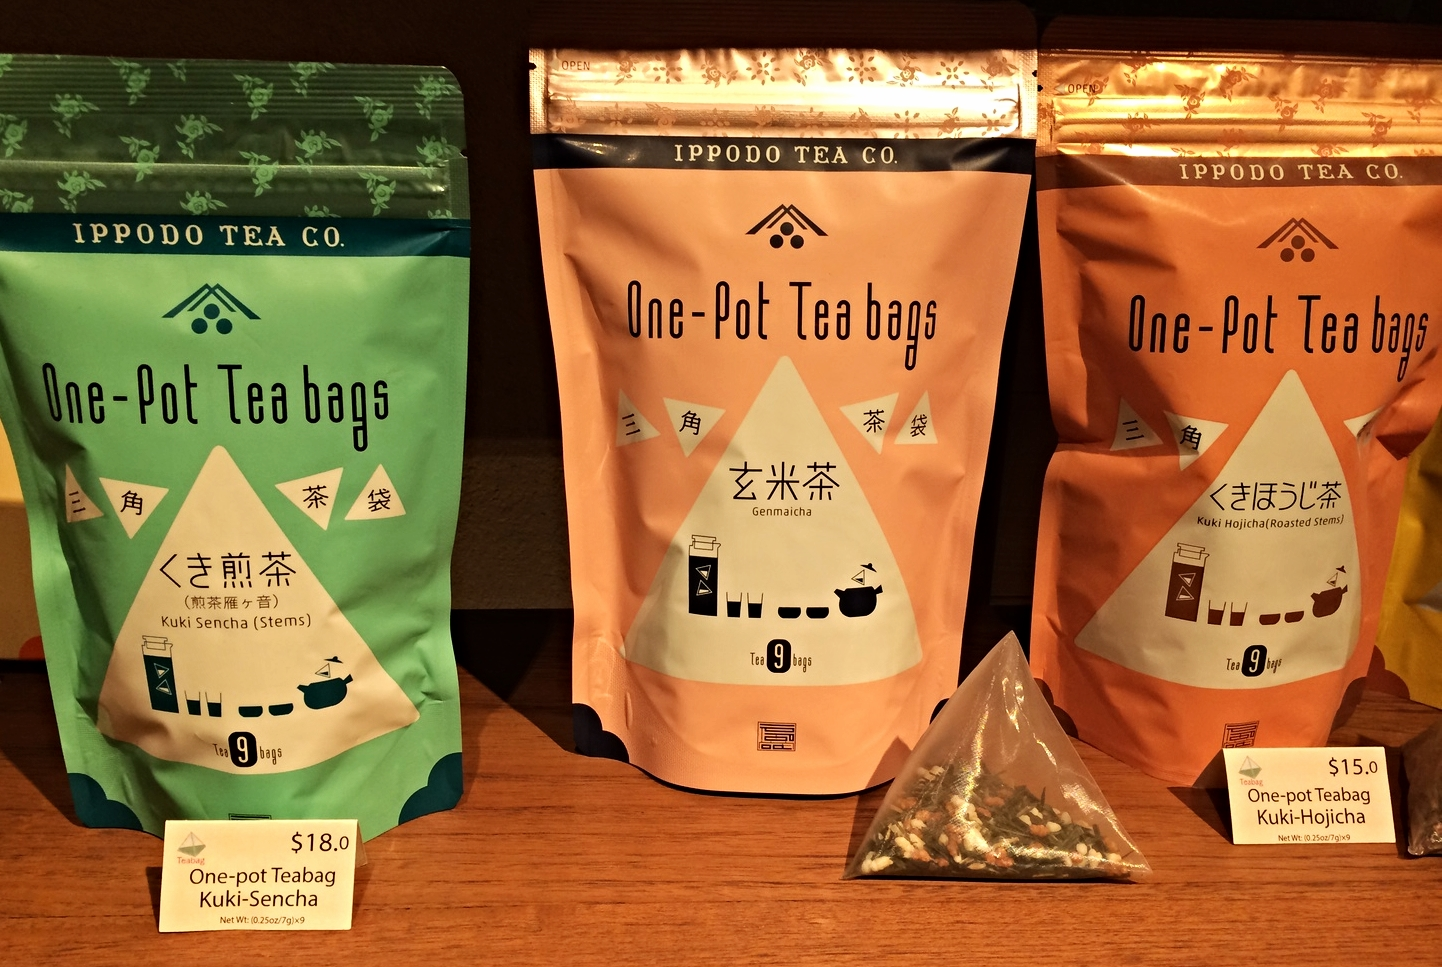 Ippodo carries over 40 types of Japanese green tea as well as tea accessories.